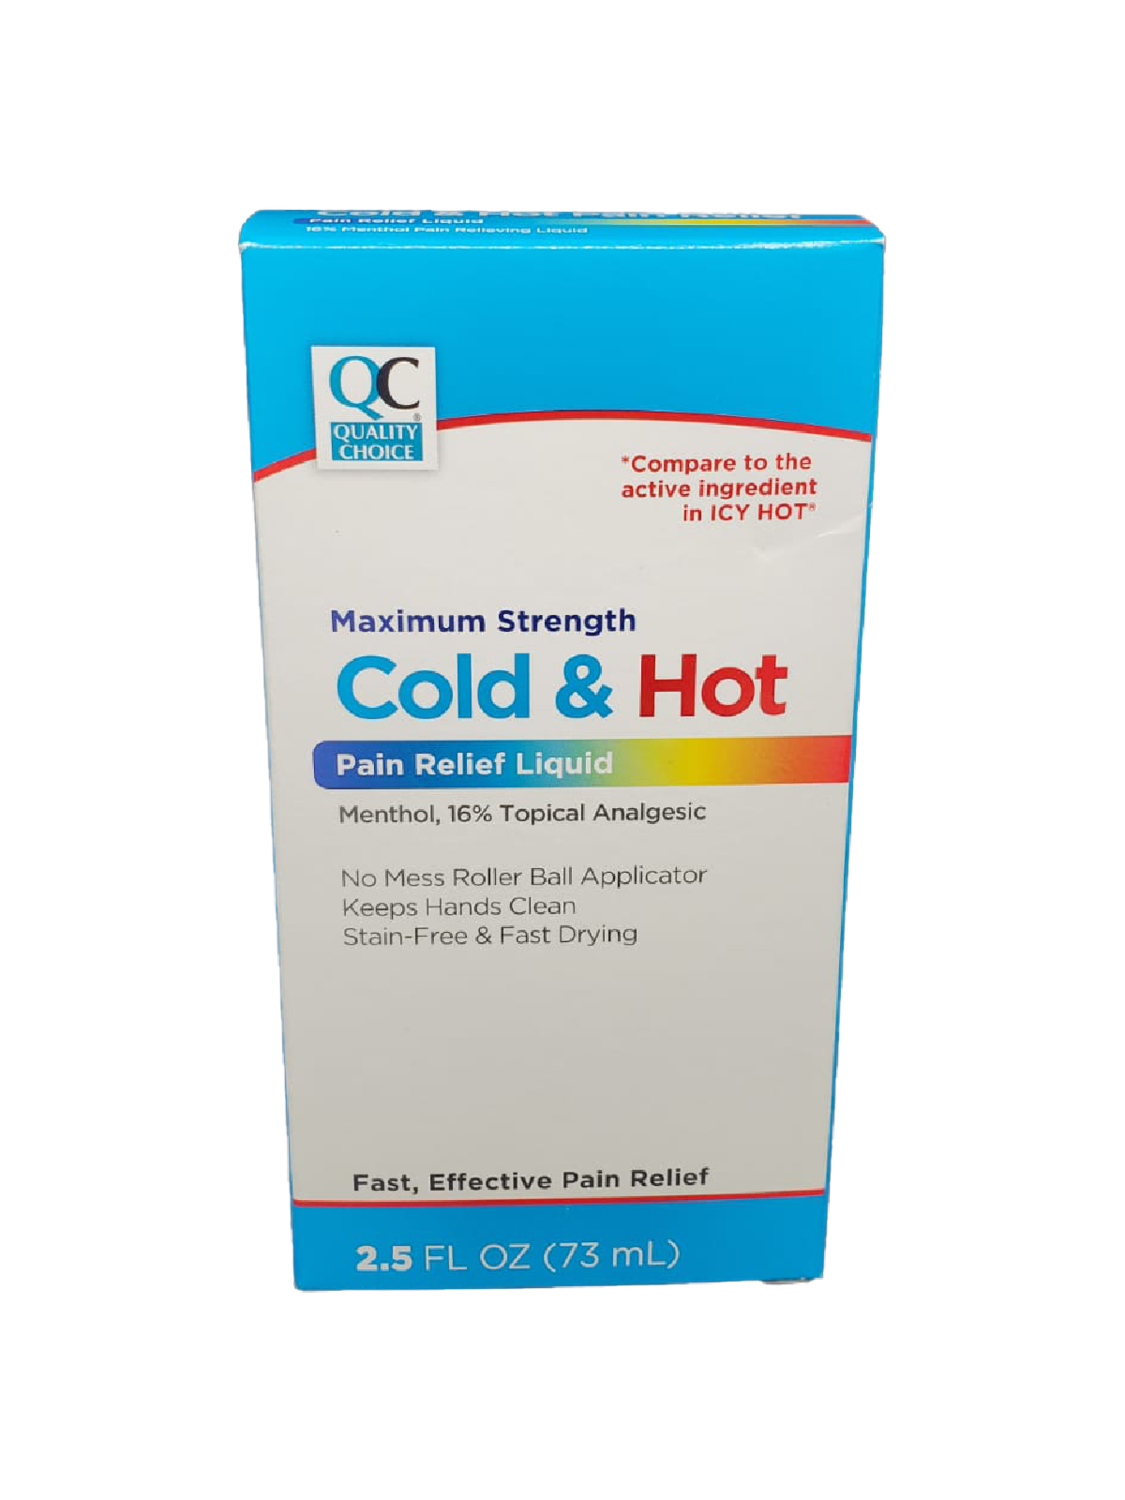 QC Cold & Hot Pain Relief